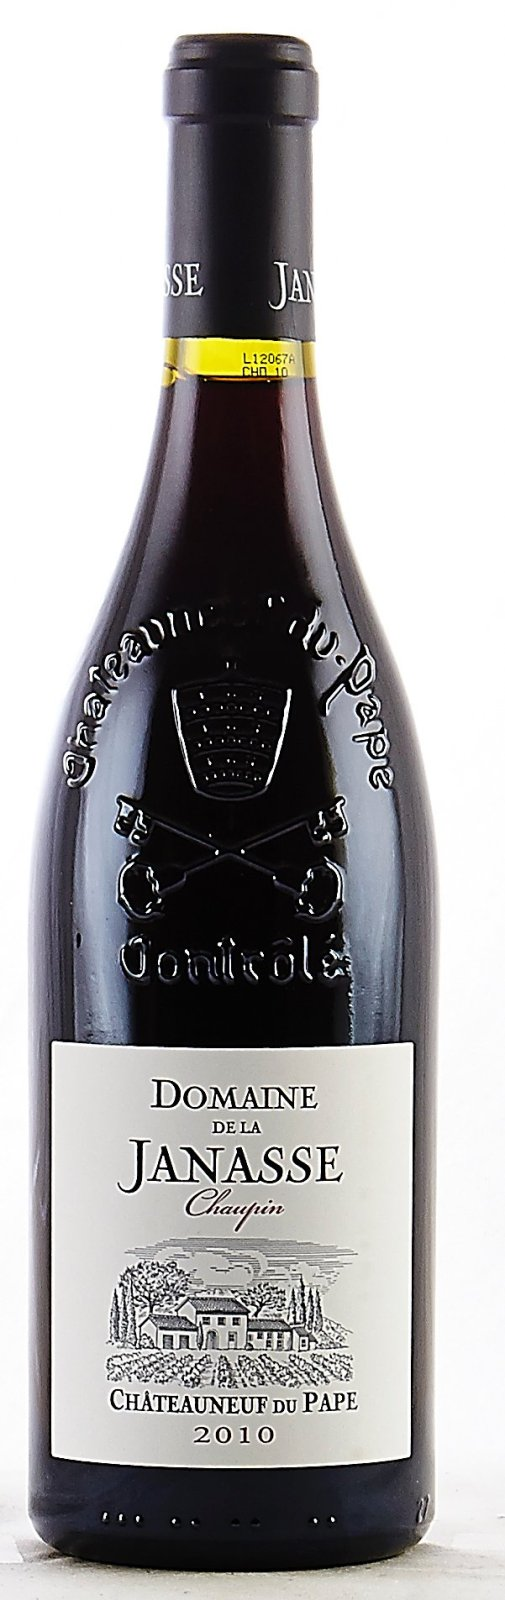 Domaine de la Janasse Chateauneuf du Pape Cuvee Chaupin 2011, 1.5L (WA95) from The BPW - Merchants of rare and fine wines.